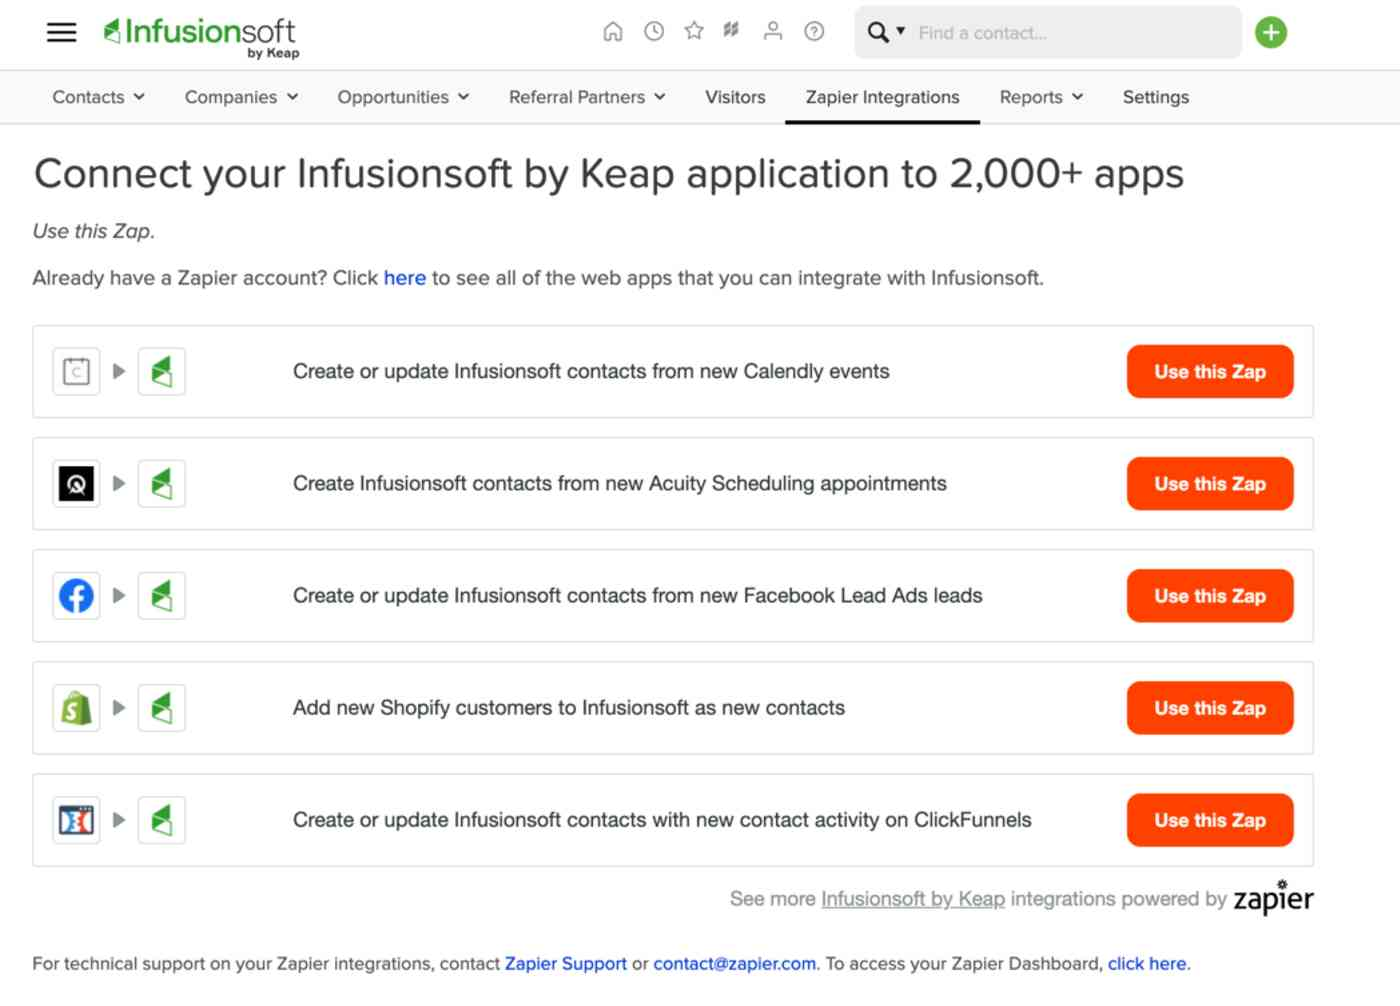 Zapier-embed-tools-2-Infusionsoft by Keap